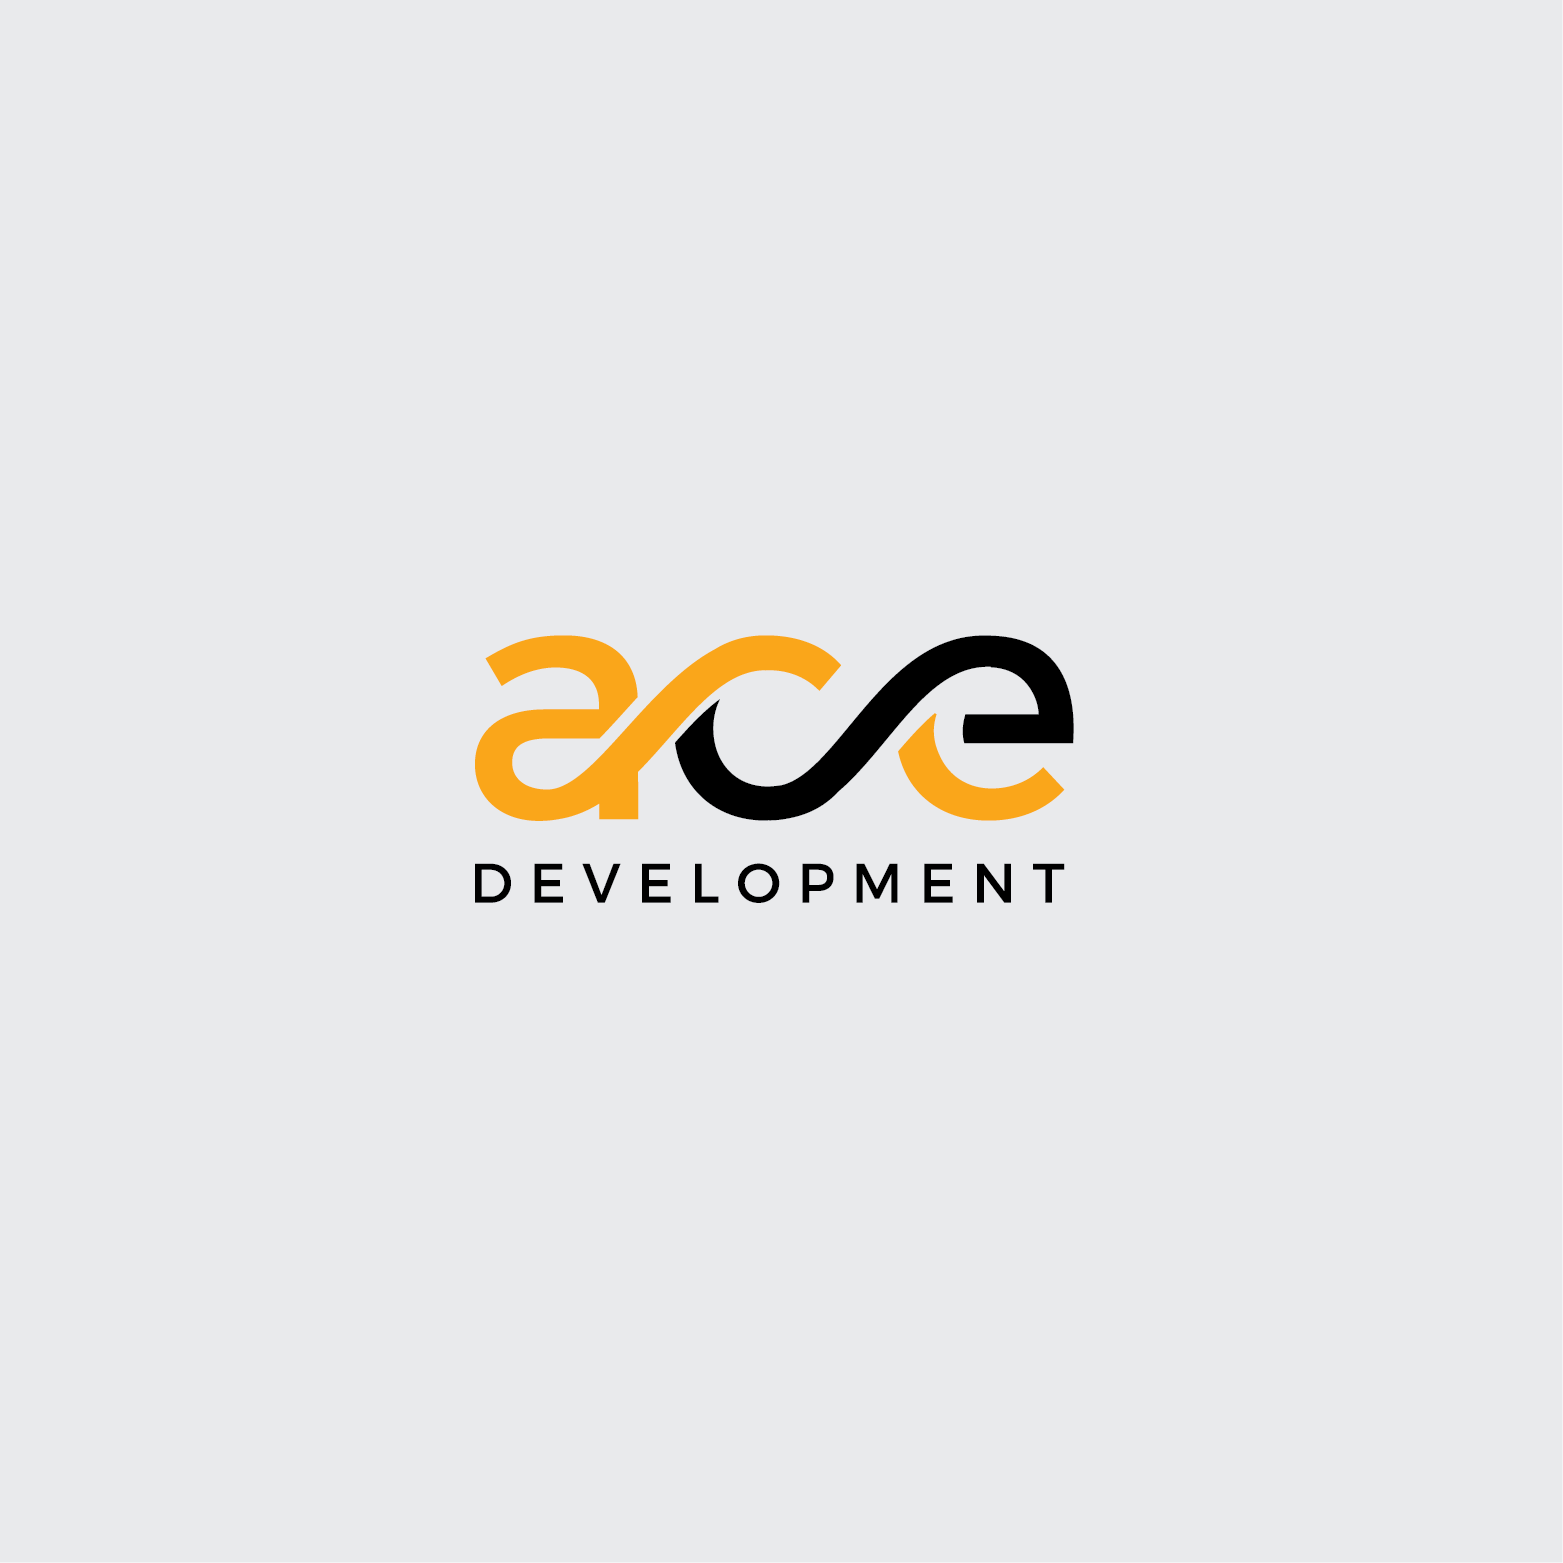 Logo Design by 354studio - Entry No. 51 in the Logo Design Contest Fun Logo Design for Ace development.